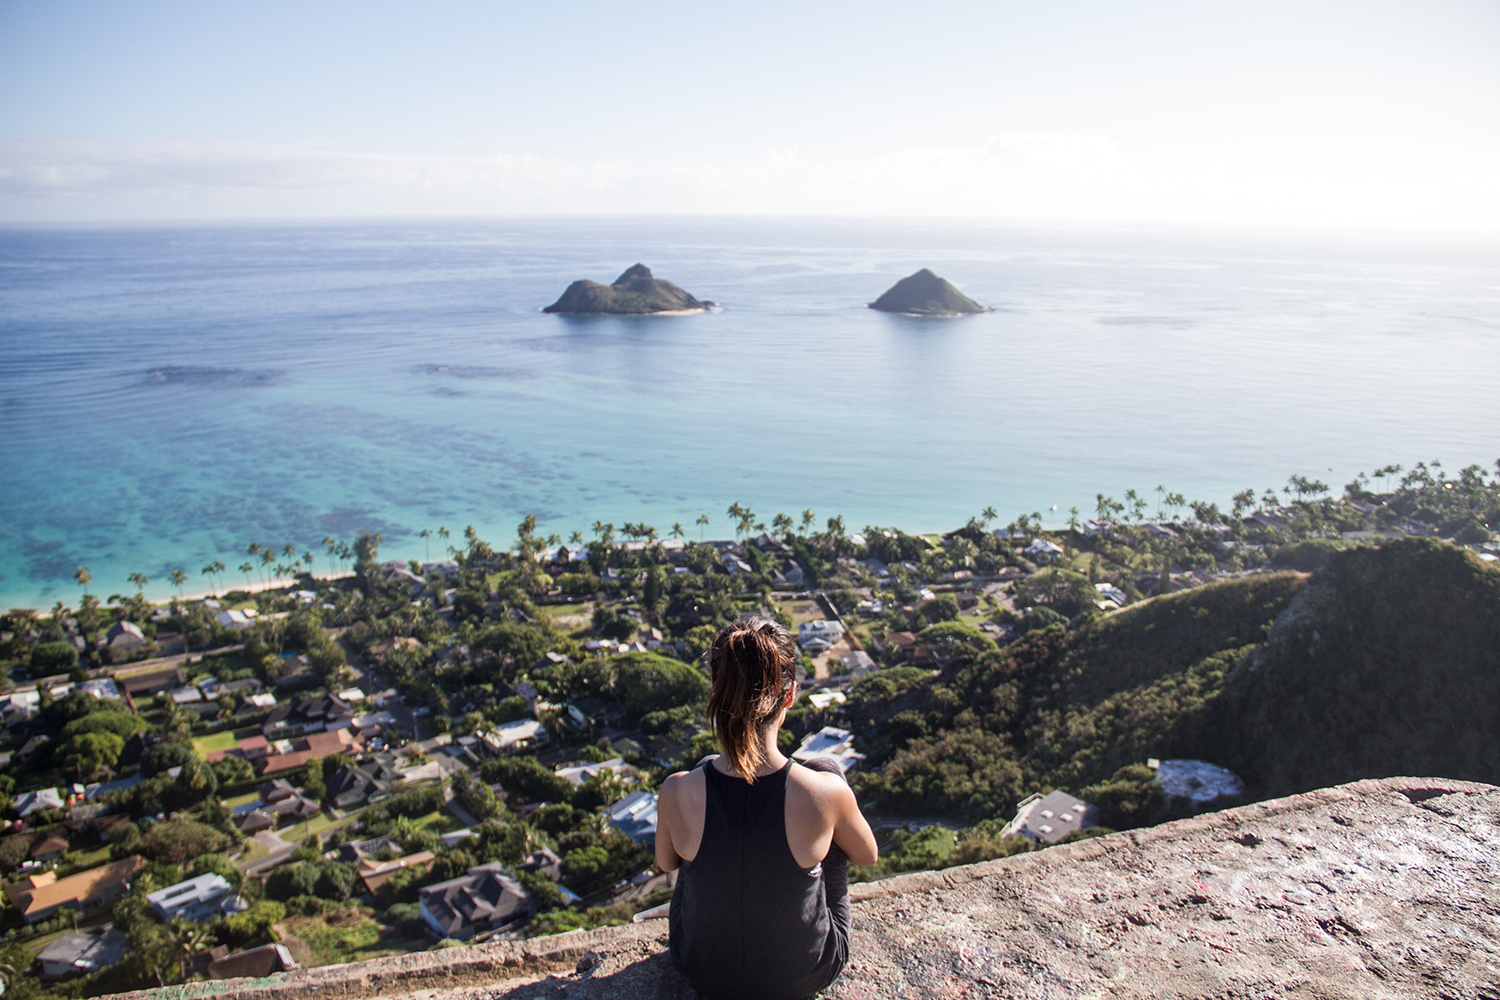 Lanikai Pillbox Trail offers a breathtaking view of the Mokolua Islands, Kailua and Waimanalo in a relatively easy and short hike.